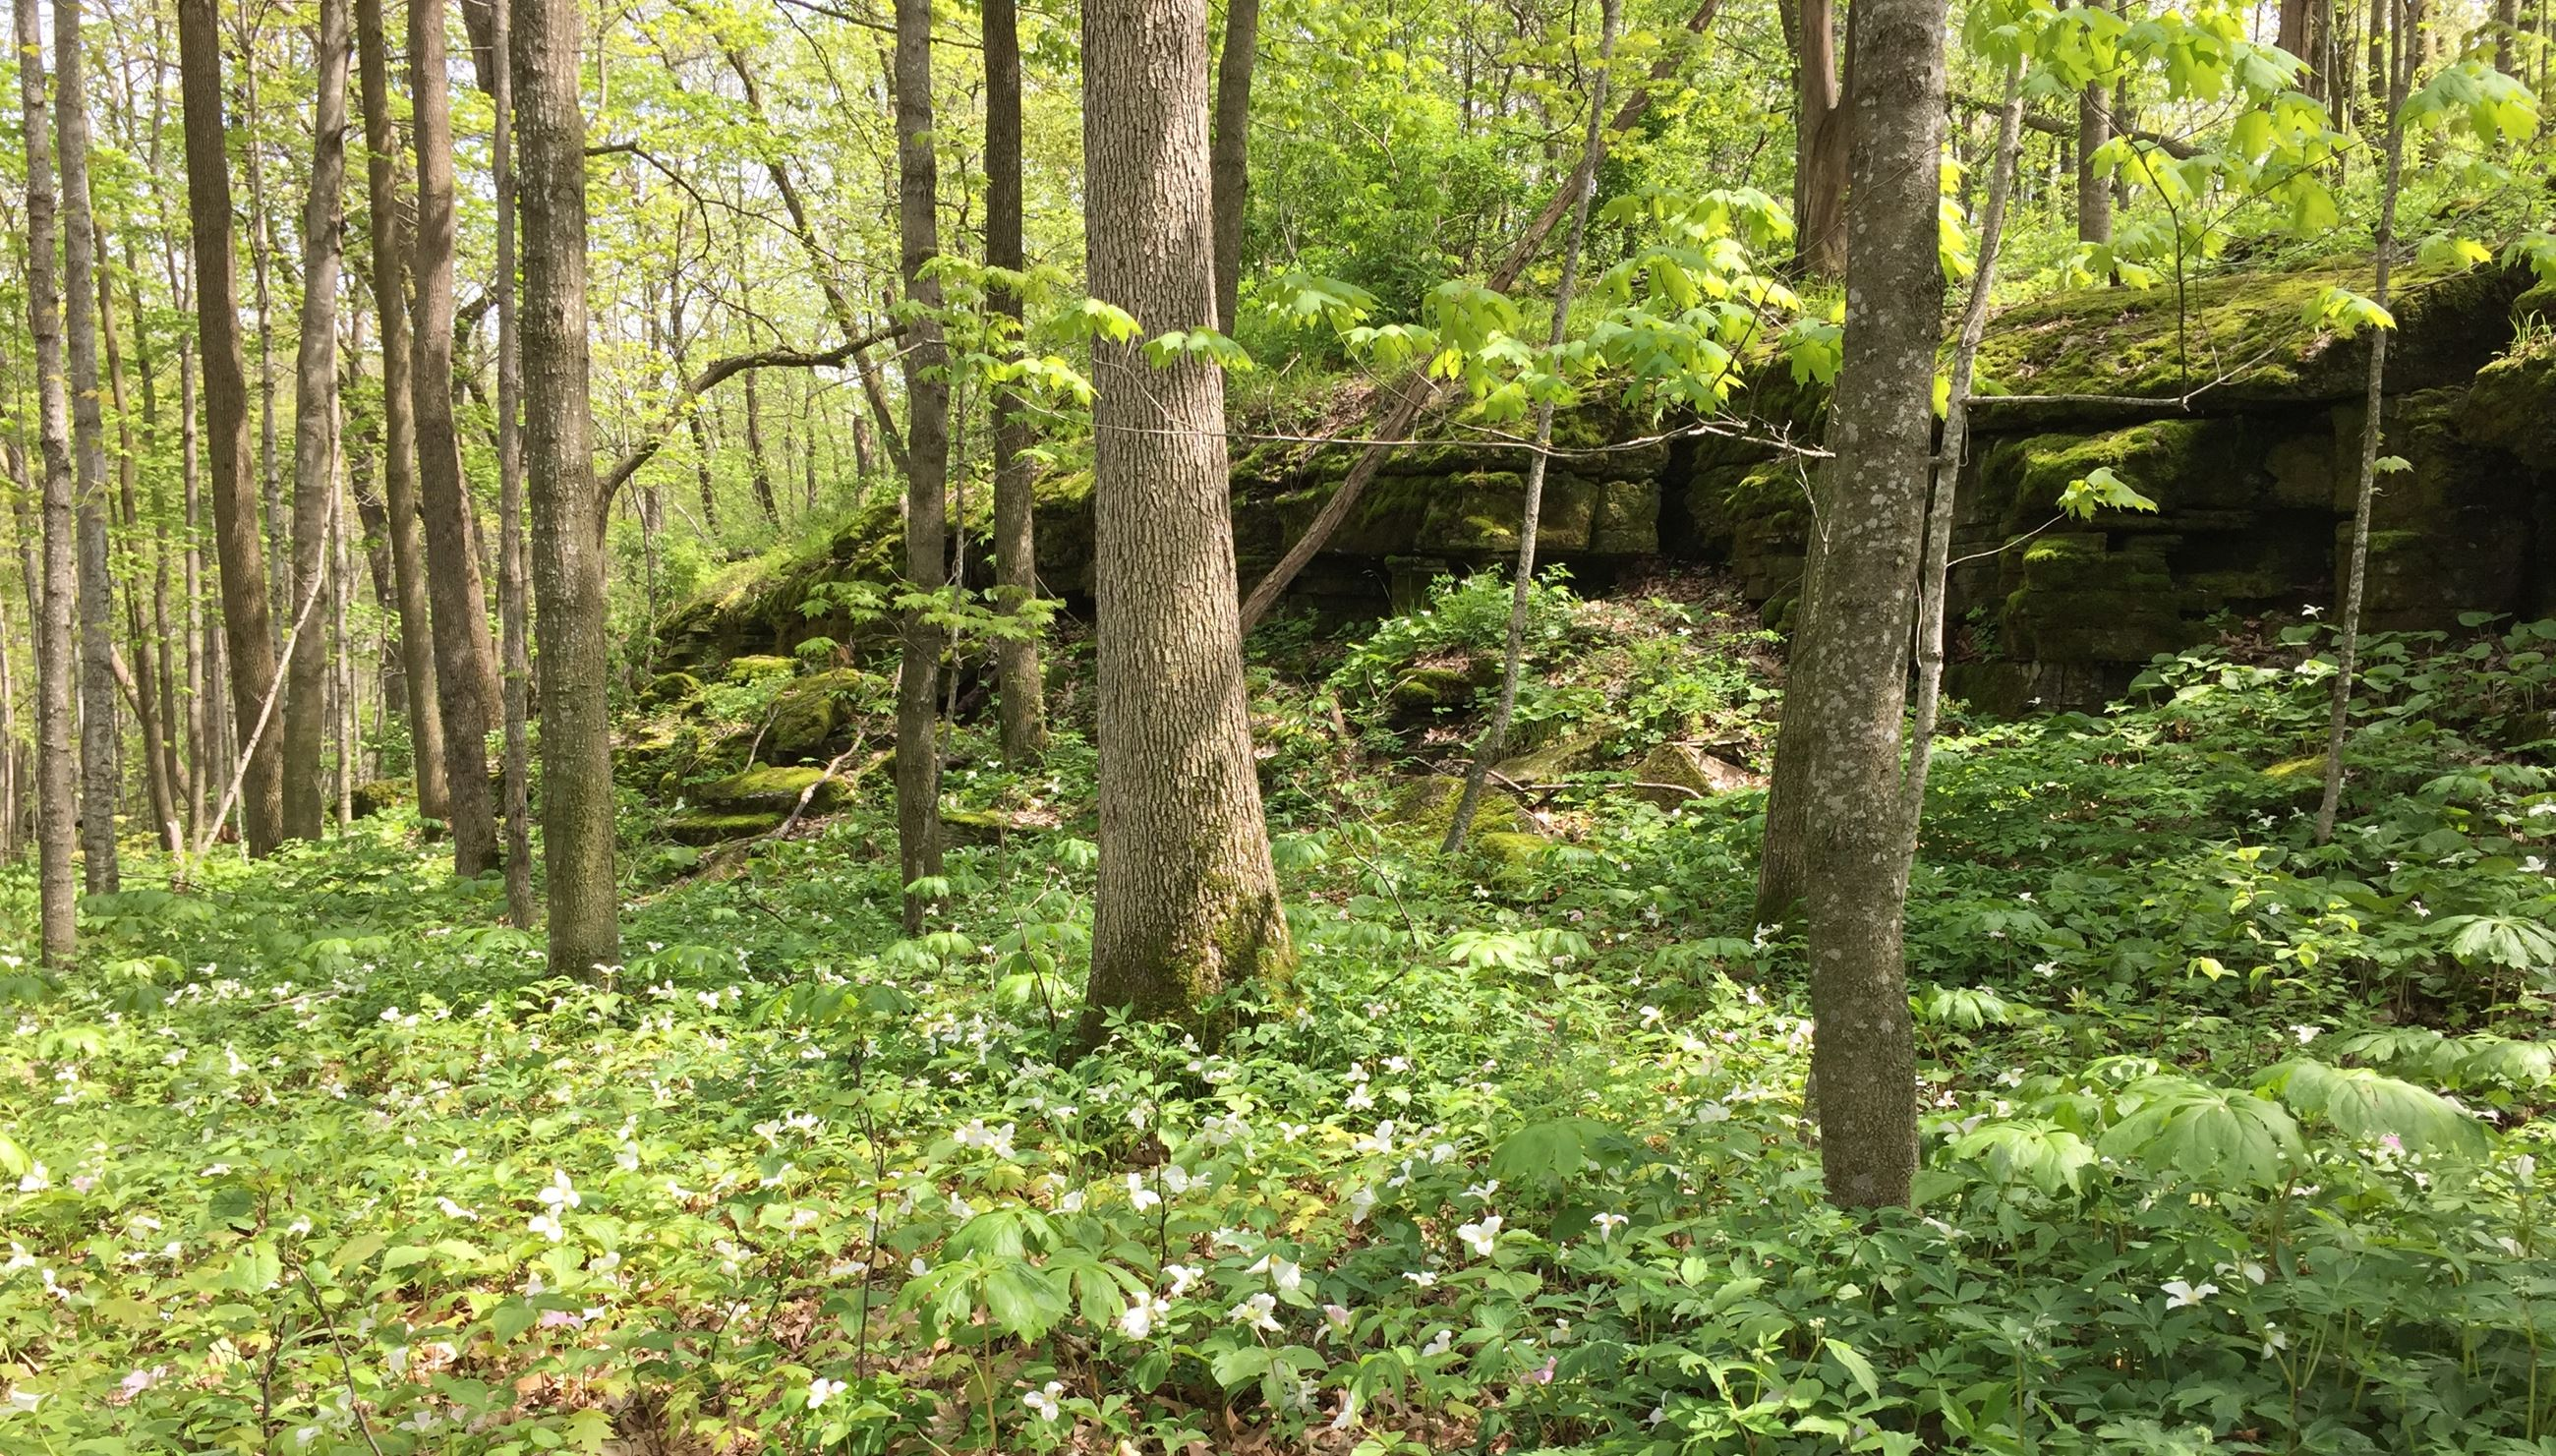 A woodland in spring with lots of white wildflowers. There is a rock ledge through the middle of the